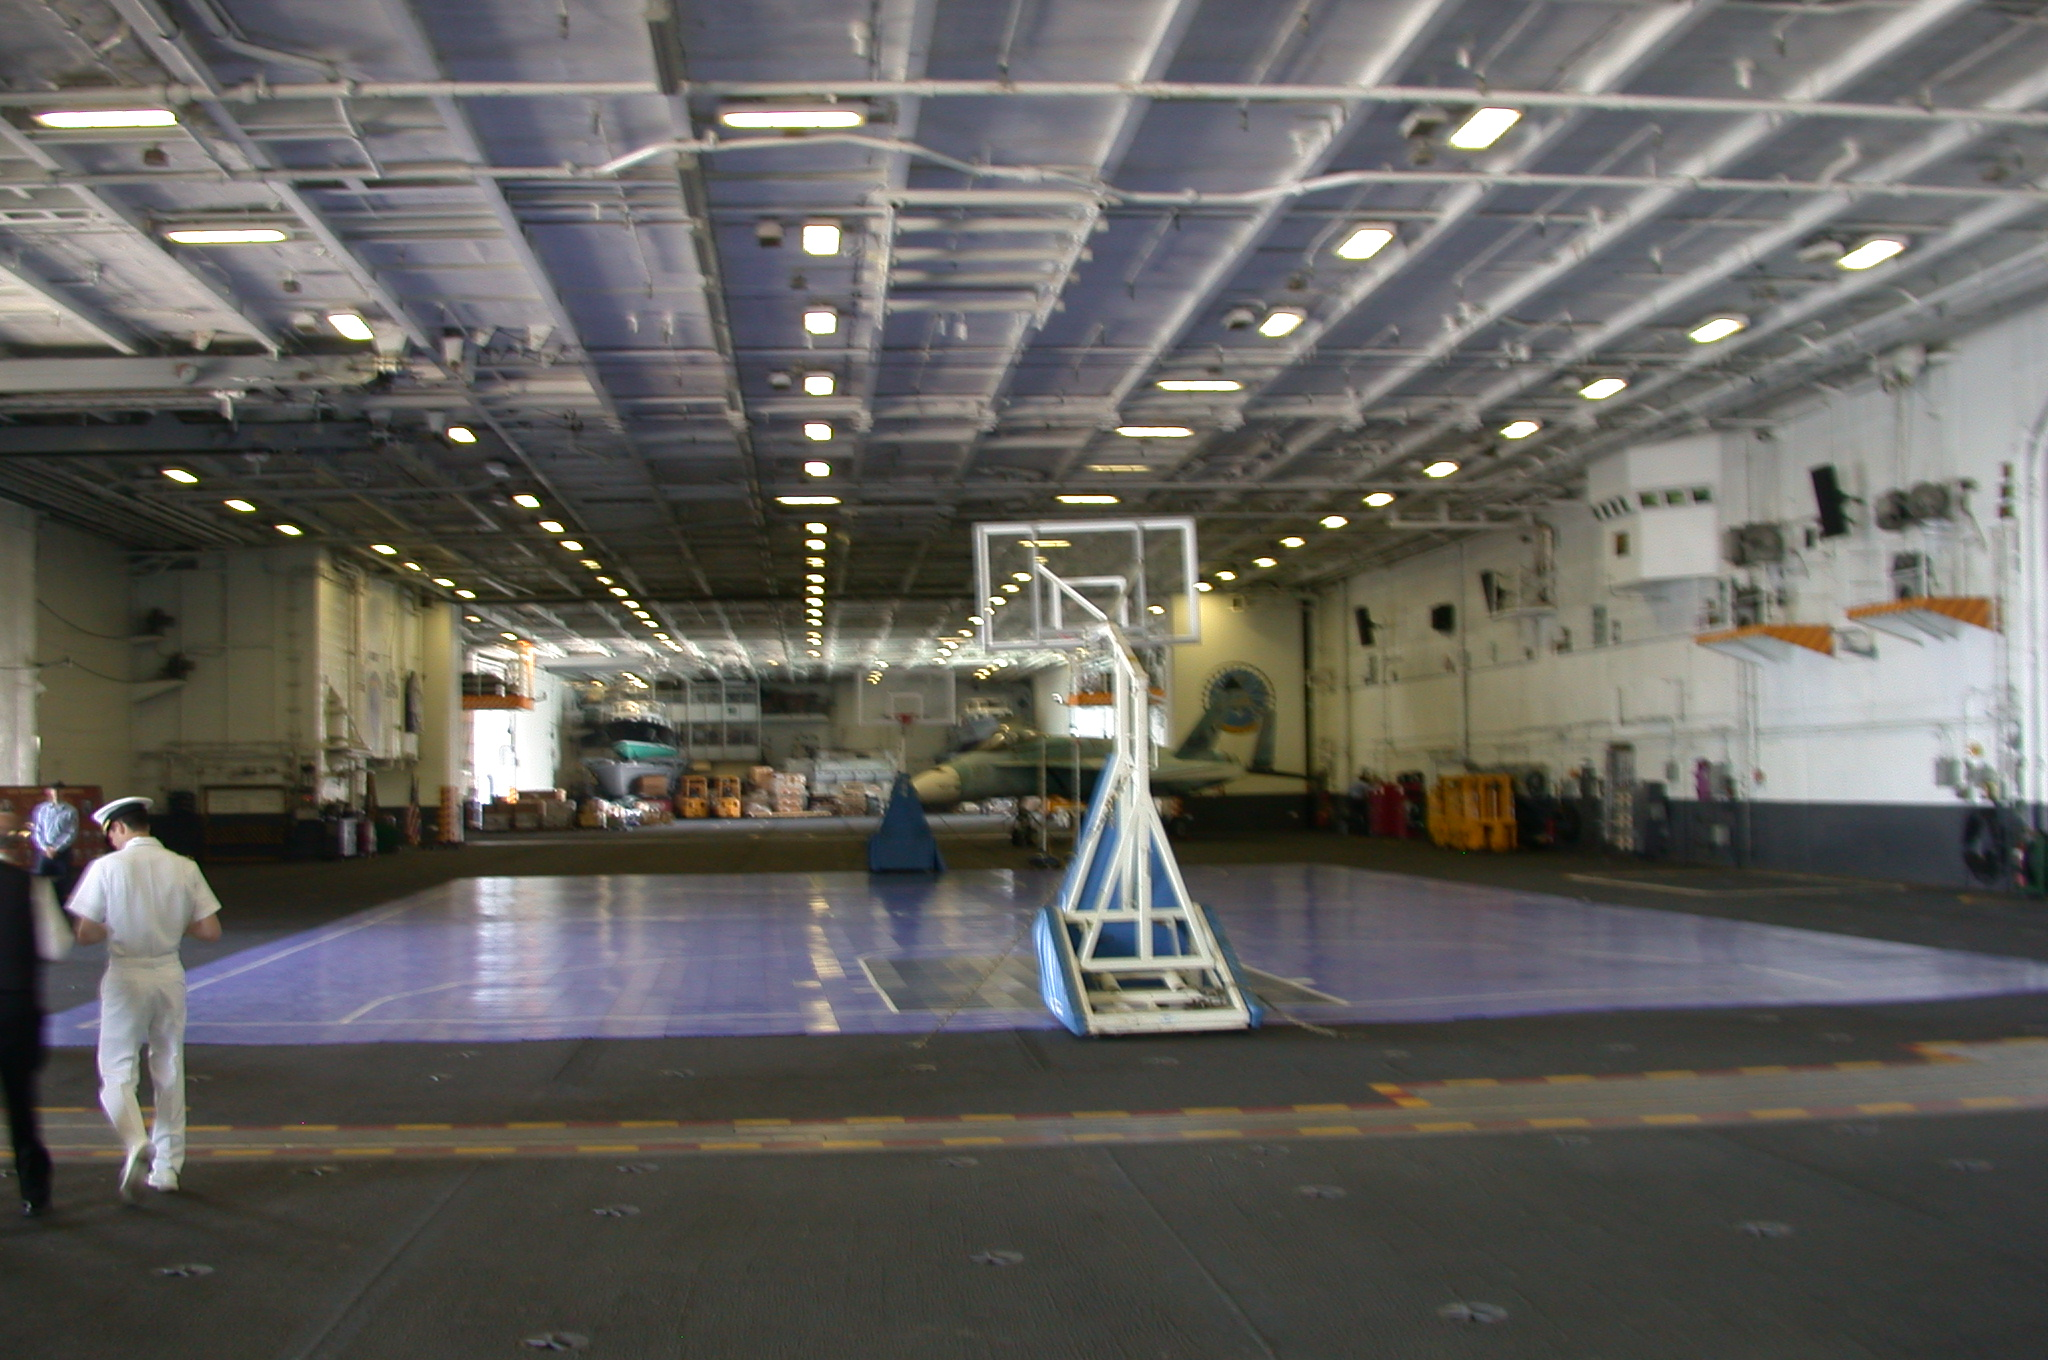 DSCN0101.jpg - The hangar deck.